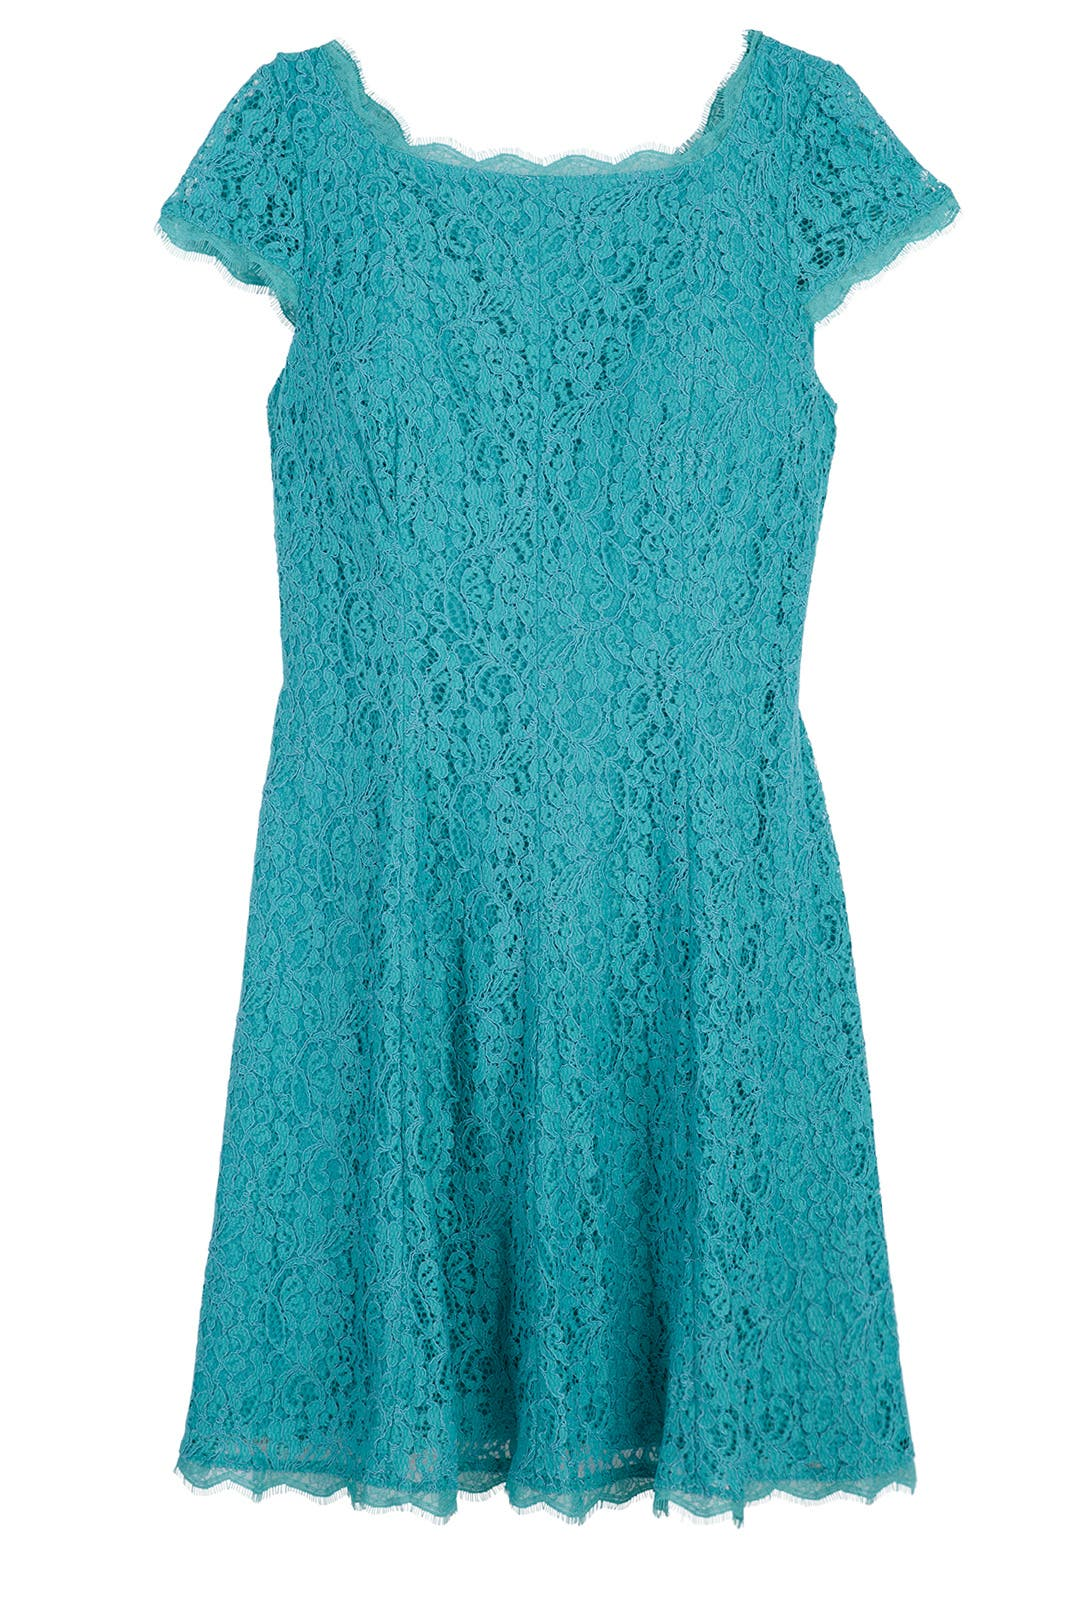 Jade Lace Dress by Adrianna Papell for $40 | Rent the Runway